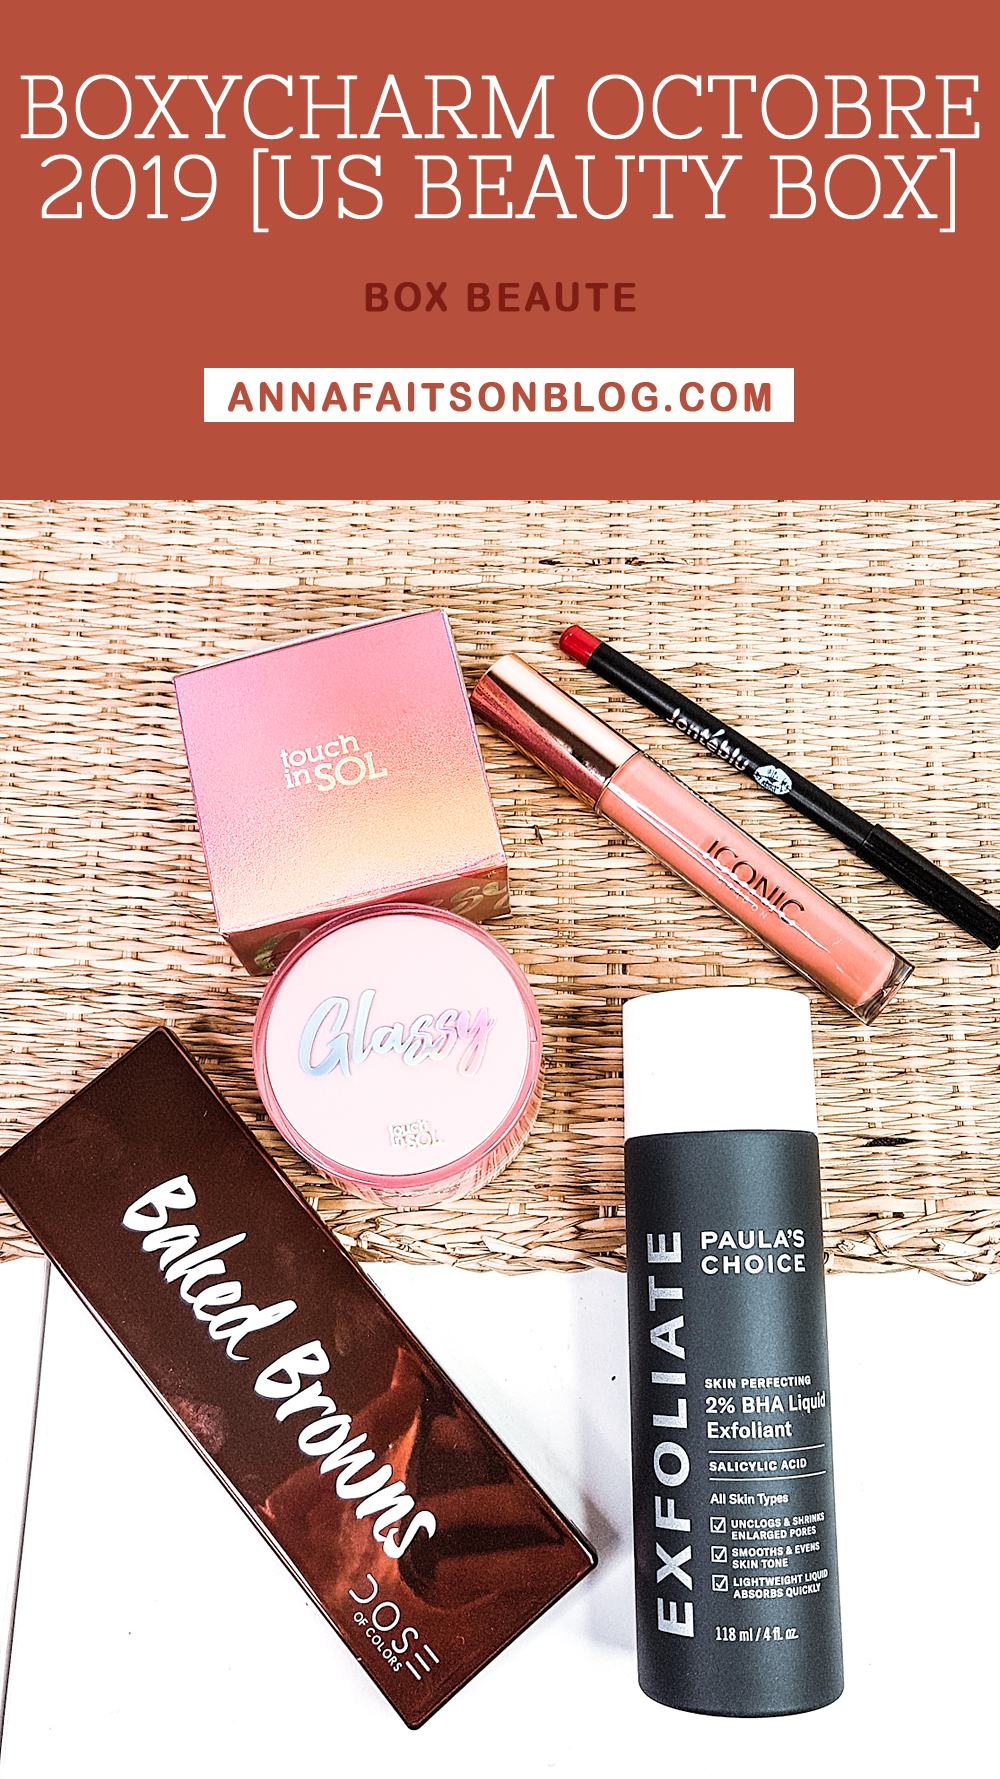 Boxycharm Octobre 2019